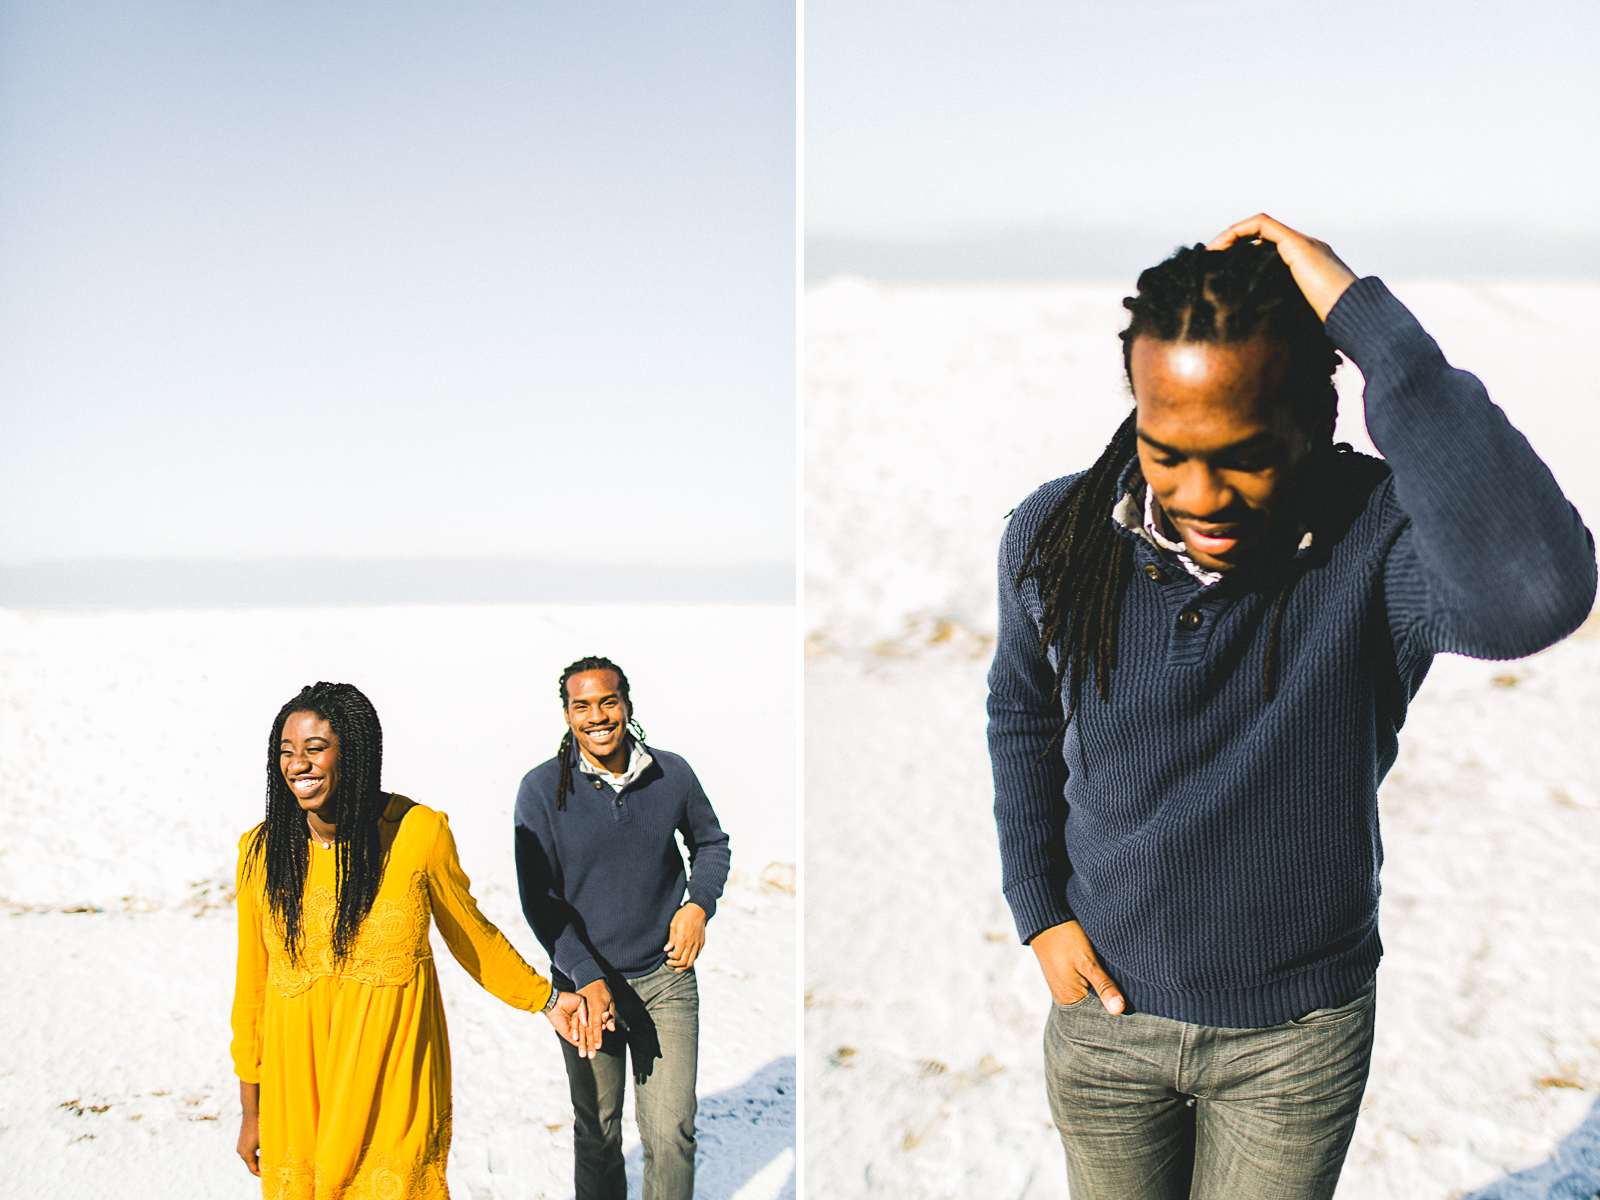 mayden photography engagement6.jpg